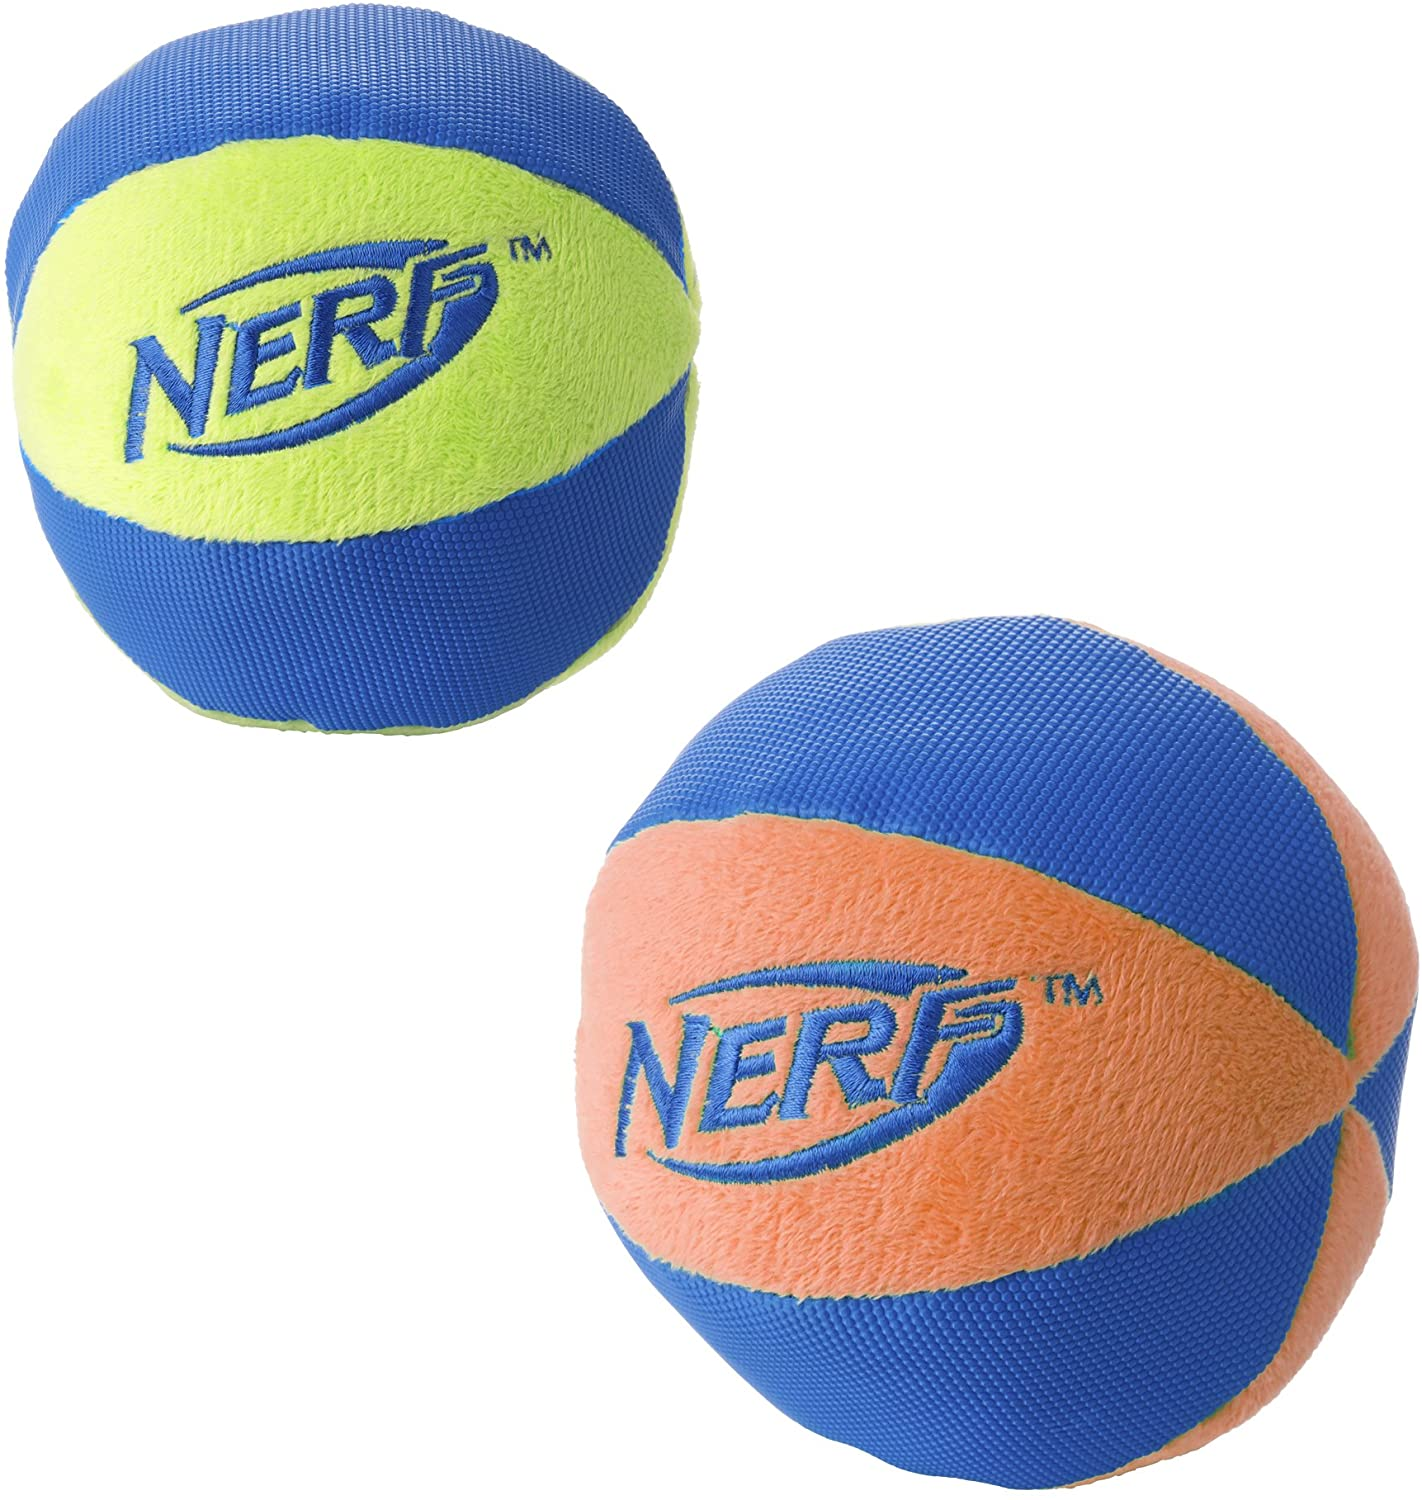 Nerf Dog Chewable Ball Dog Toy with Interactive X-Ring Design, Lightweight, Durable and Water Resistant, 6.5 Inch Diameter For Medium/Large Breeds, Two Pack, Orange/Blue & Green/Blue